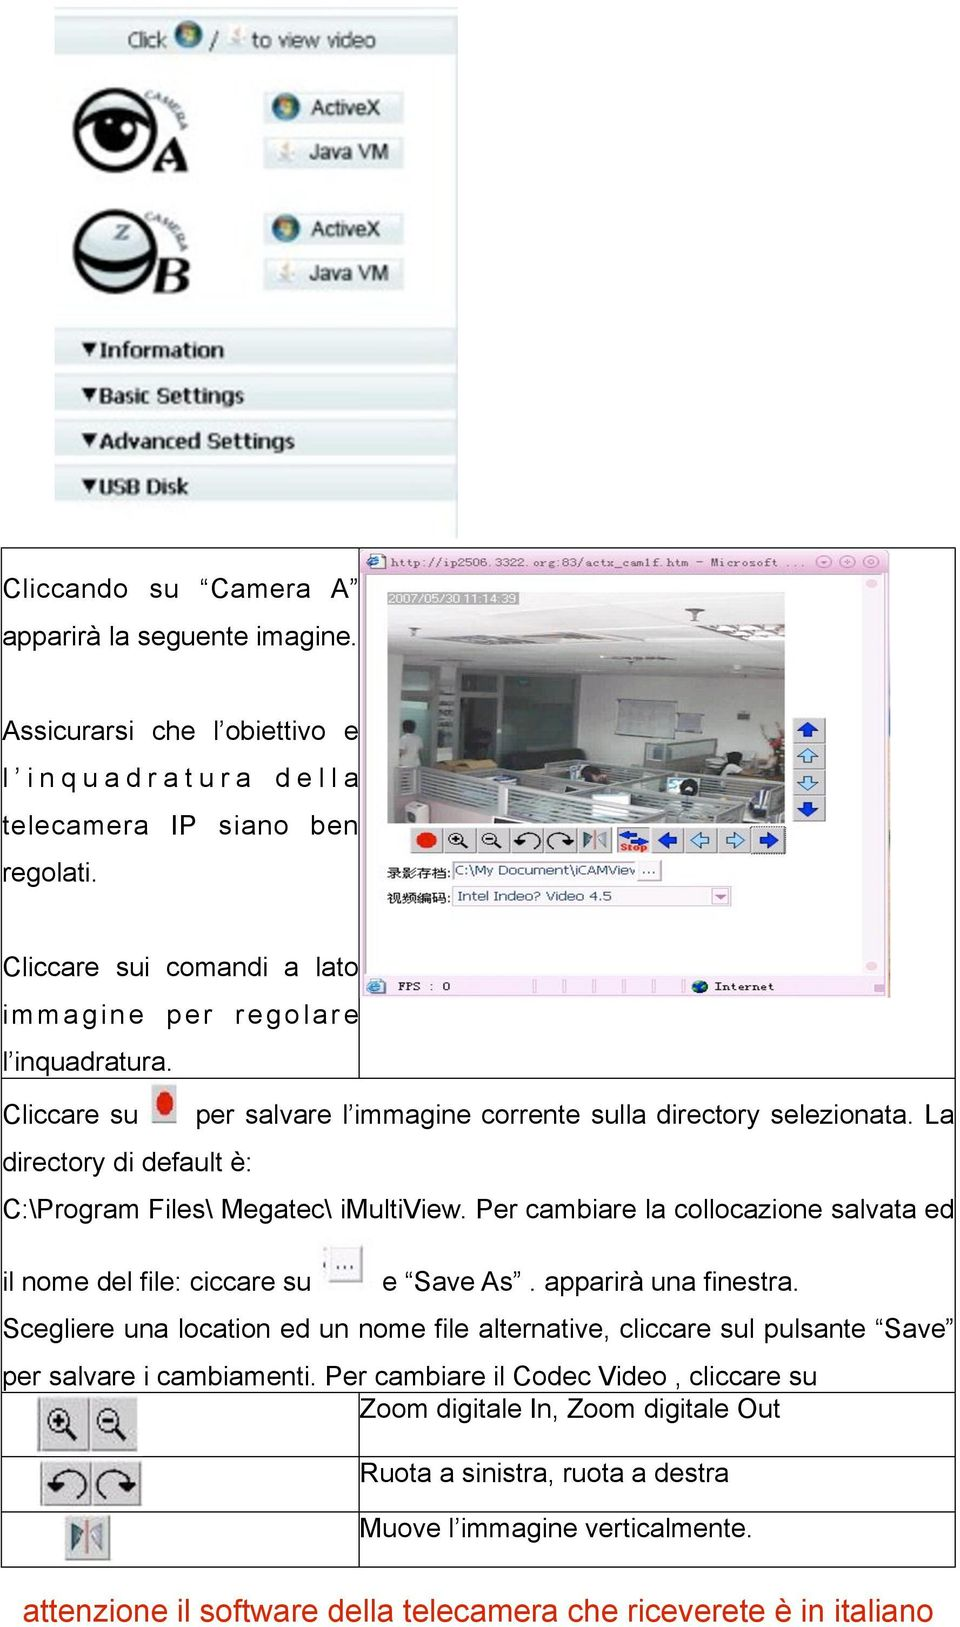 La directory di default è: C:\Program Files\ Megatec\ imultiview. Per cambiare la collocazione salvata ed il nome del file: ciccare su e Save As. apparirà una finestra.